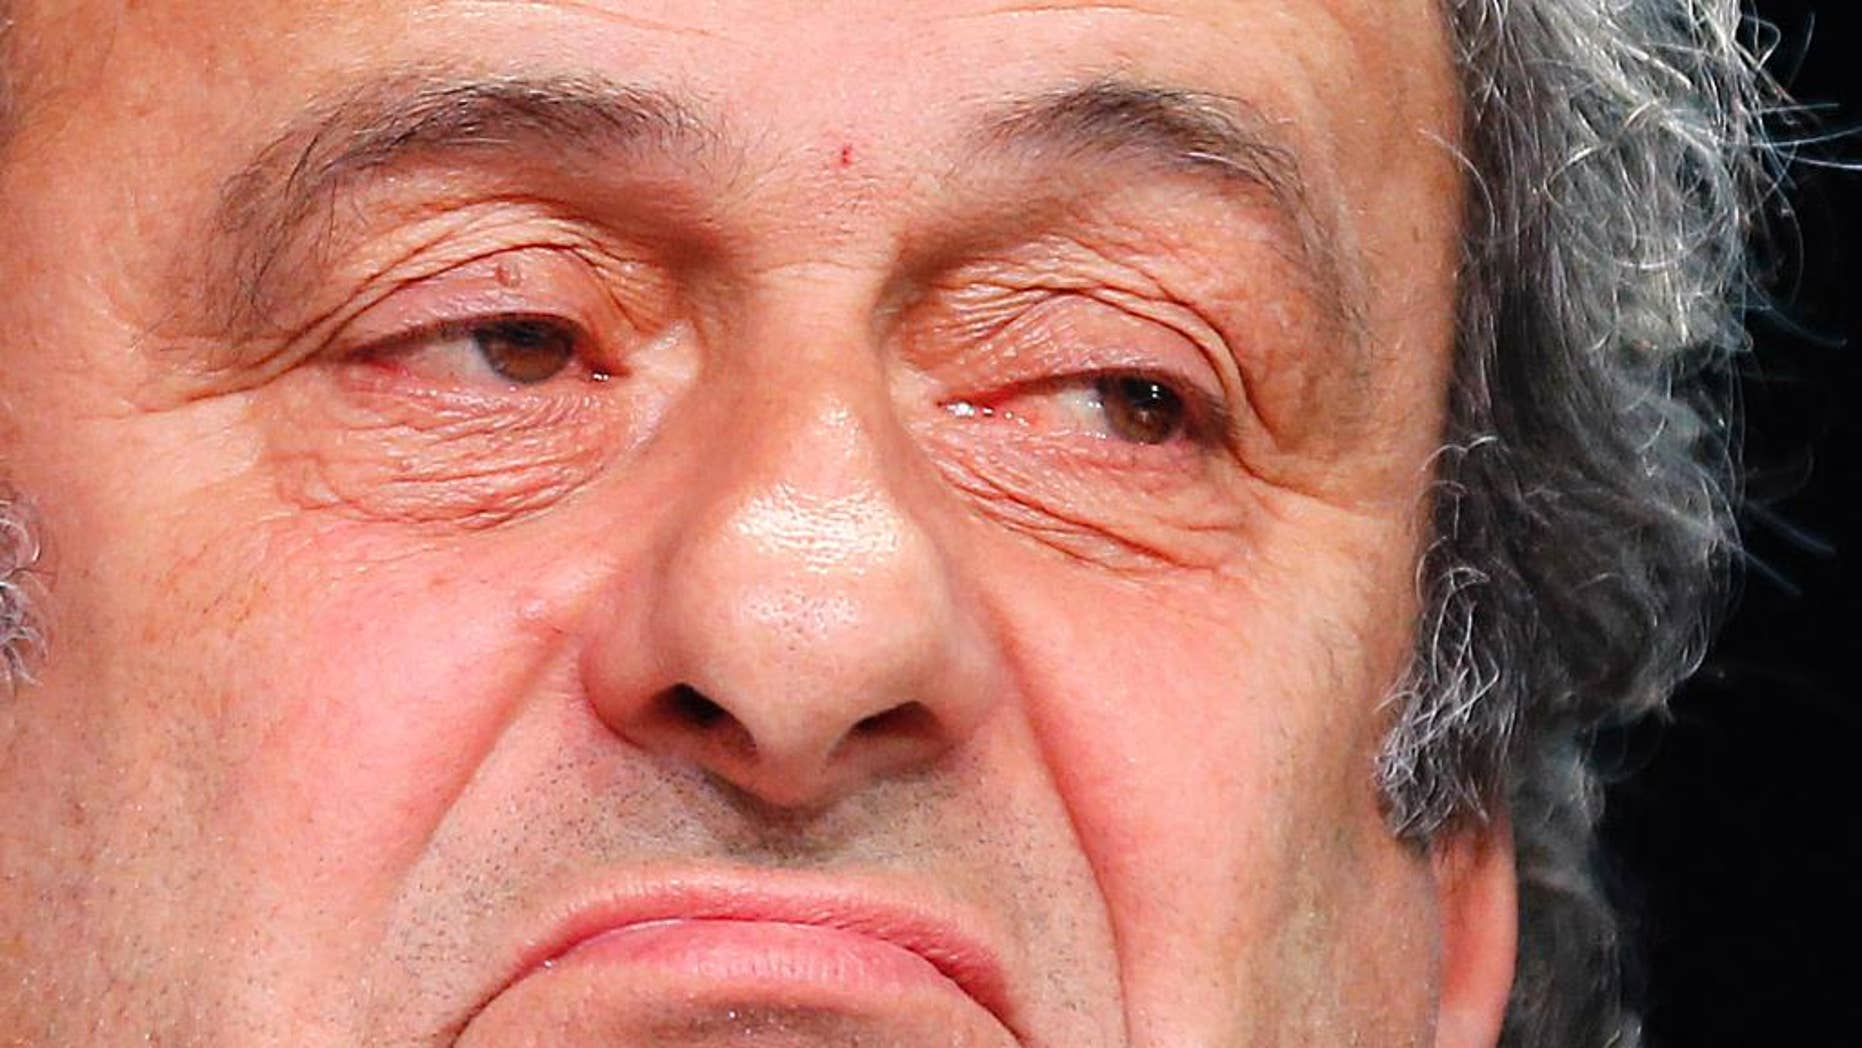 """FILE - In this May 28, 2015 file photo President of UEFA Michel Platini grimaces during a press conference following a meeting of the UEFA board ahead of the FIFA congress in a hotel in Zurich, Switzerland. Complaining that he is being """"dragged through the mud"""" in the FIFA corruption investigation, Michel Platini believes he is """"bullet proof"""" and has not lost support in his bid to replace Sepp Blatter as the head of world soccer's governing body. The UEFA president, who has been suspended for 90 days along with Blatter, confirmed in an interview published Monday, Oct. 19, 2015 in the French daily Le Monde that he had no written contract for the $2 million payment he received from FIFA in 2011. (AP Photo/Michael Probst, File)"""